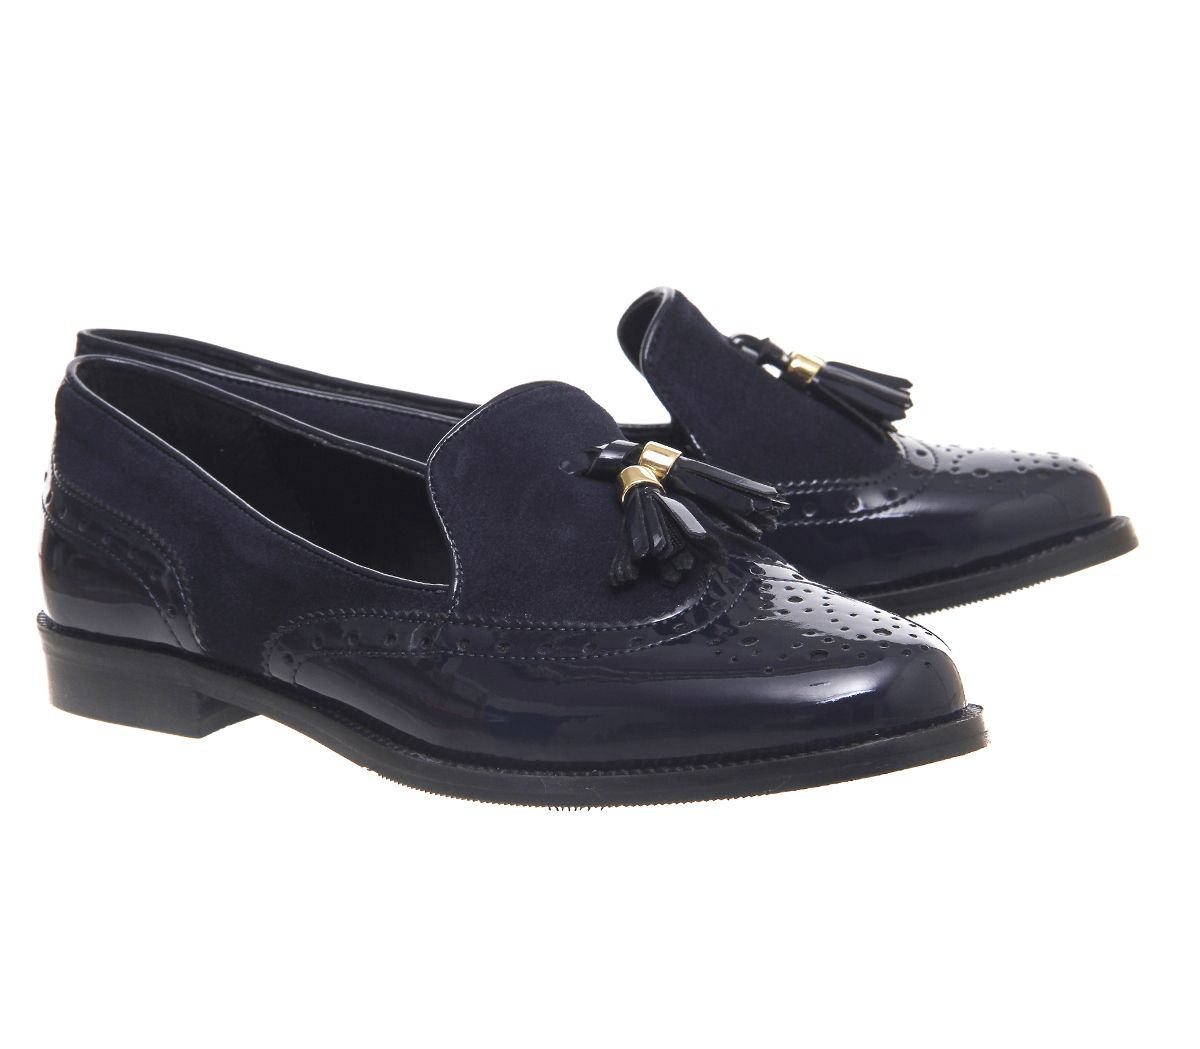 Office Ringo Tassel Loafers Navy Patent Suede - Flats